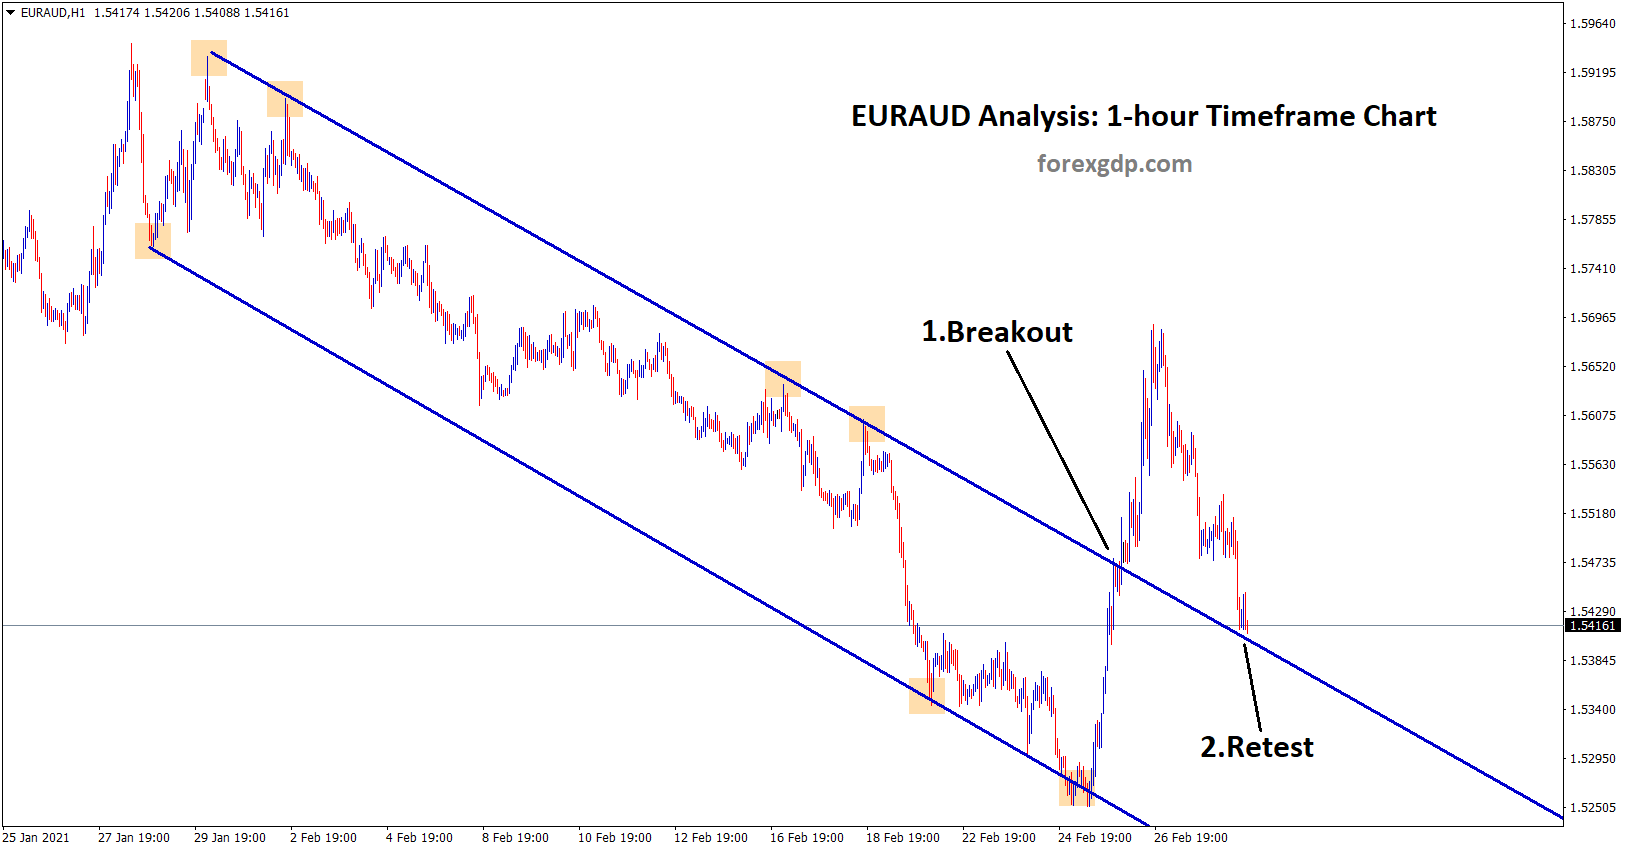 breakout and retest setup in euraud 1hr chart